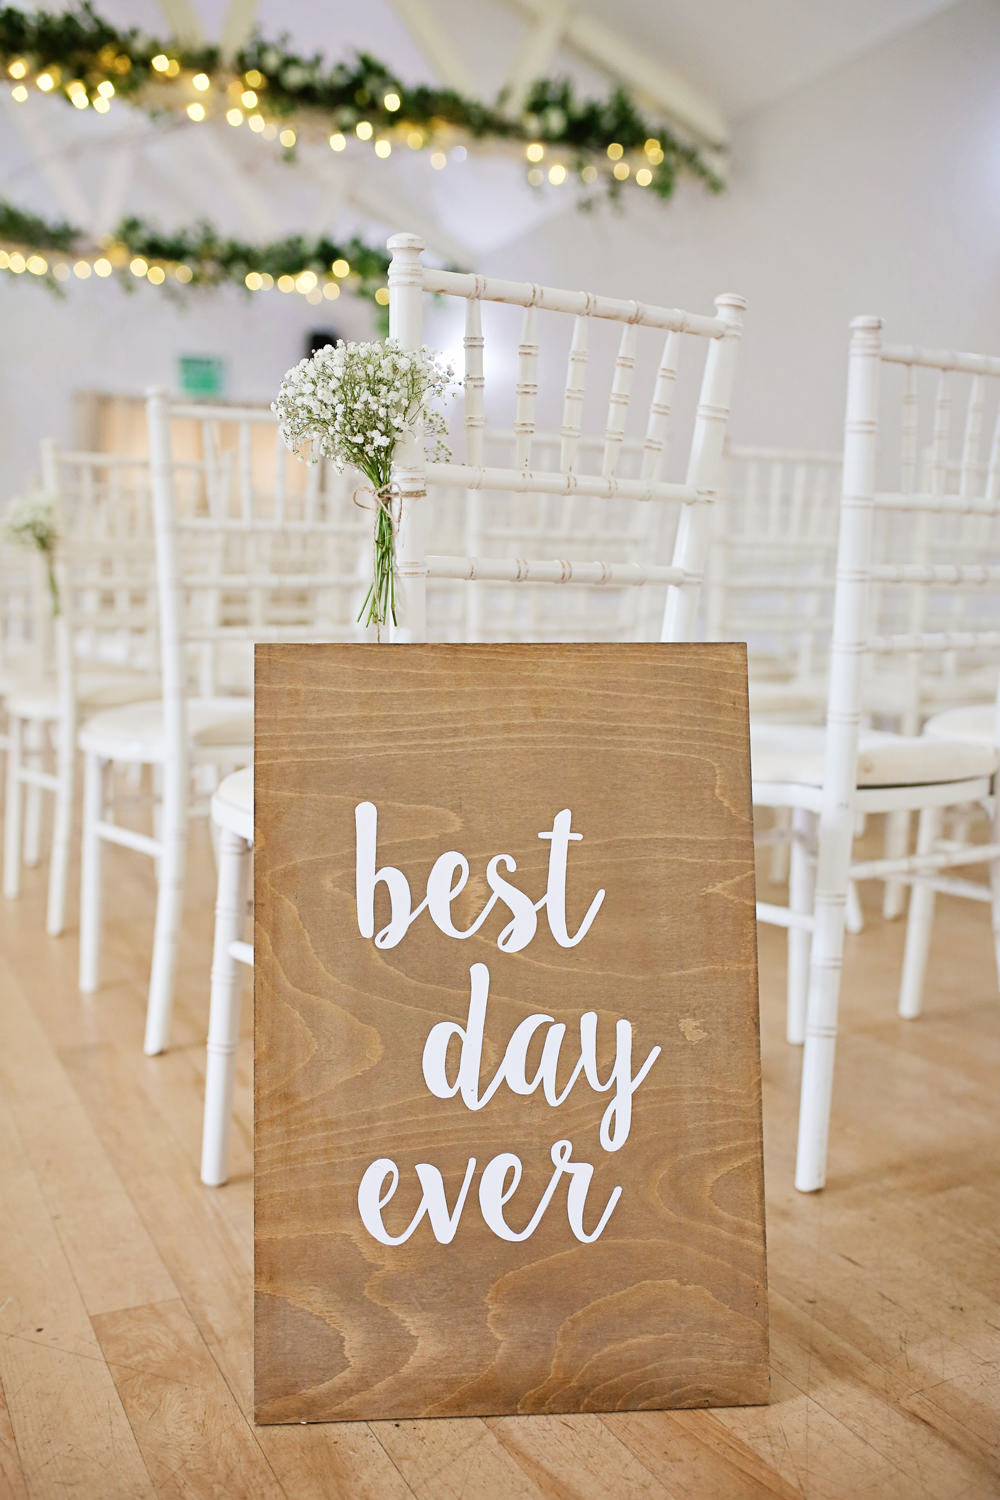 Wooden Sign Signage Calligraphy Lettering Quote Milling Barn Wedding Victoria Mitchell Photography